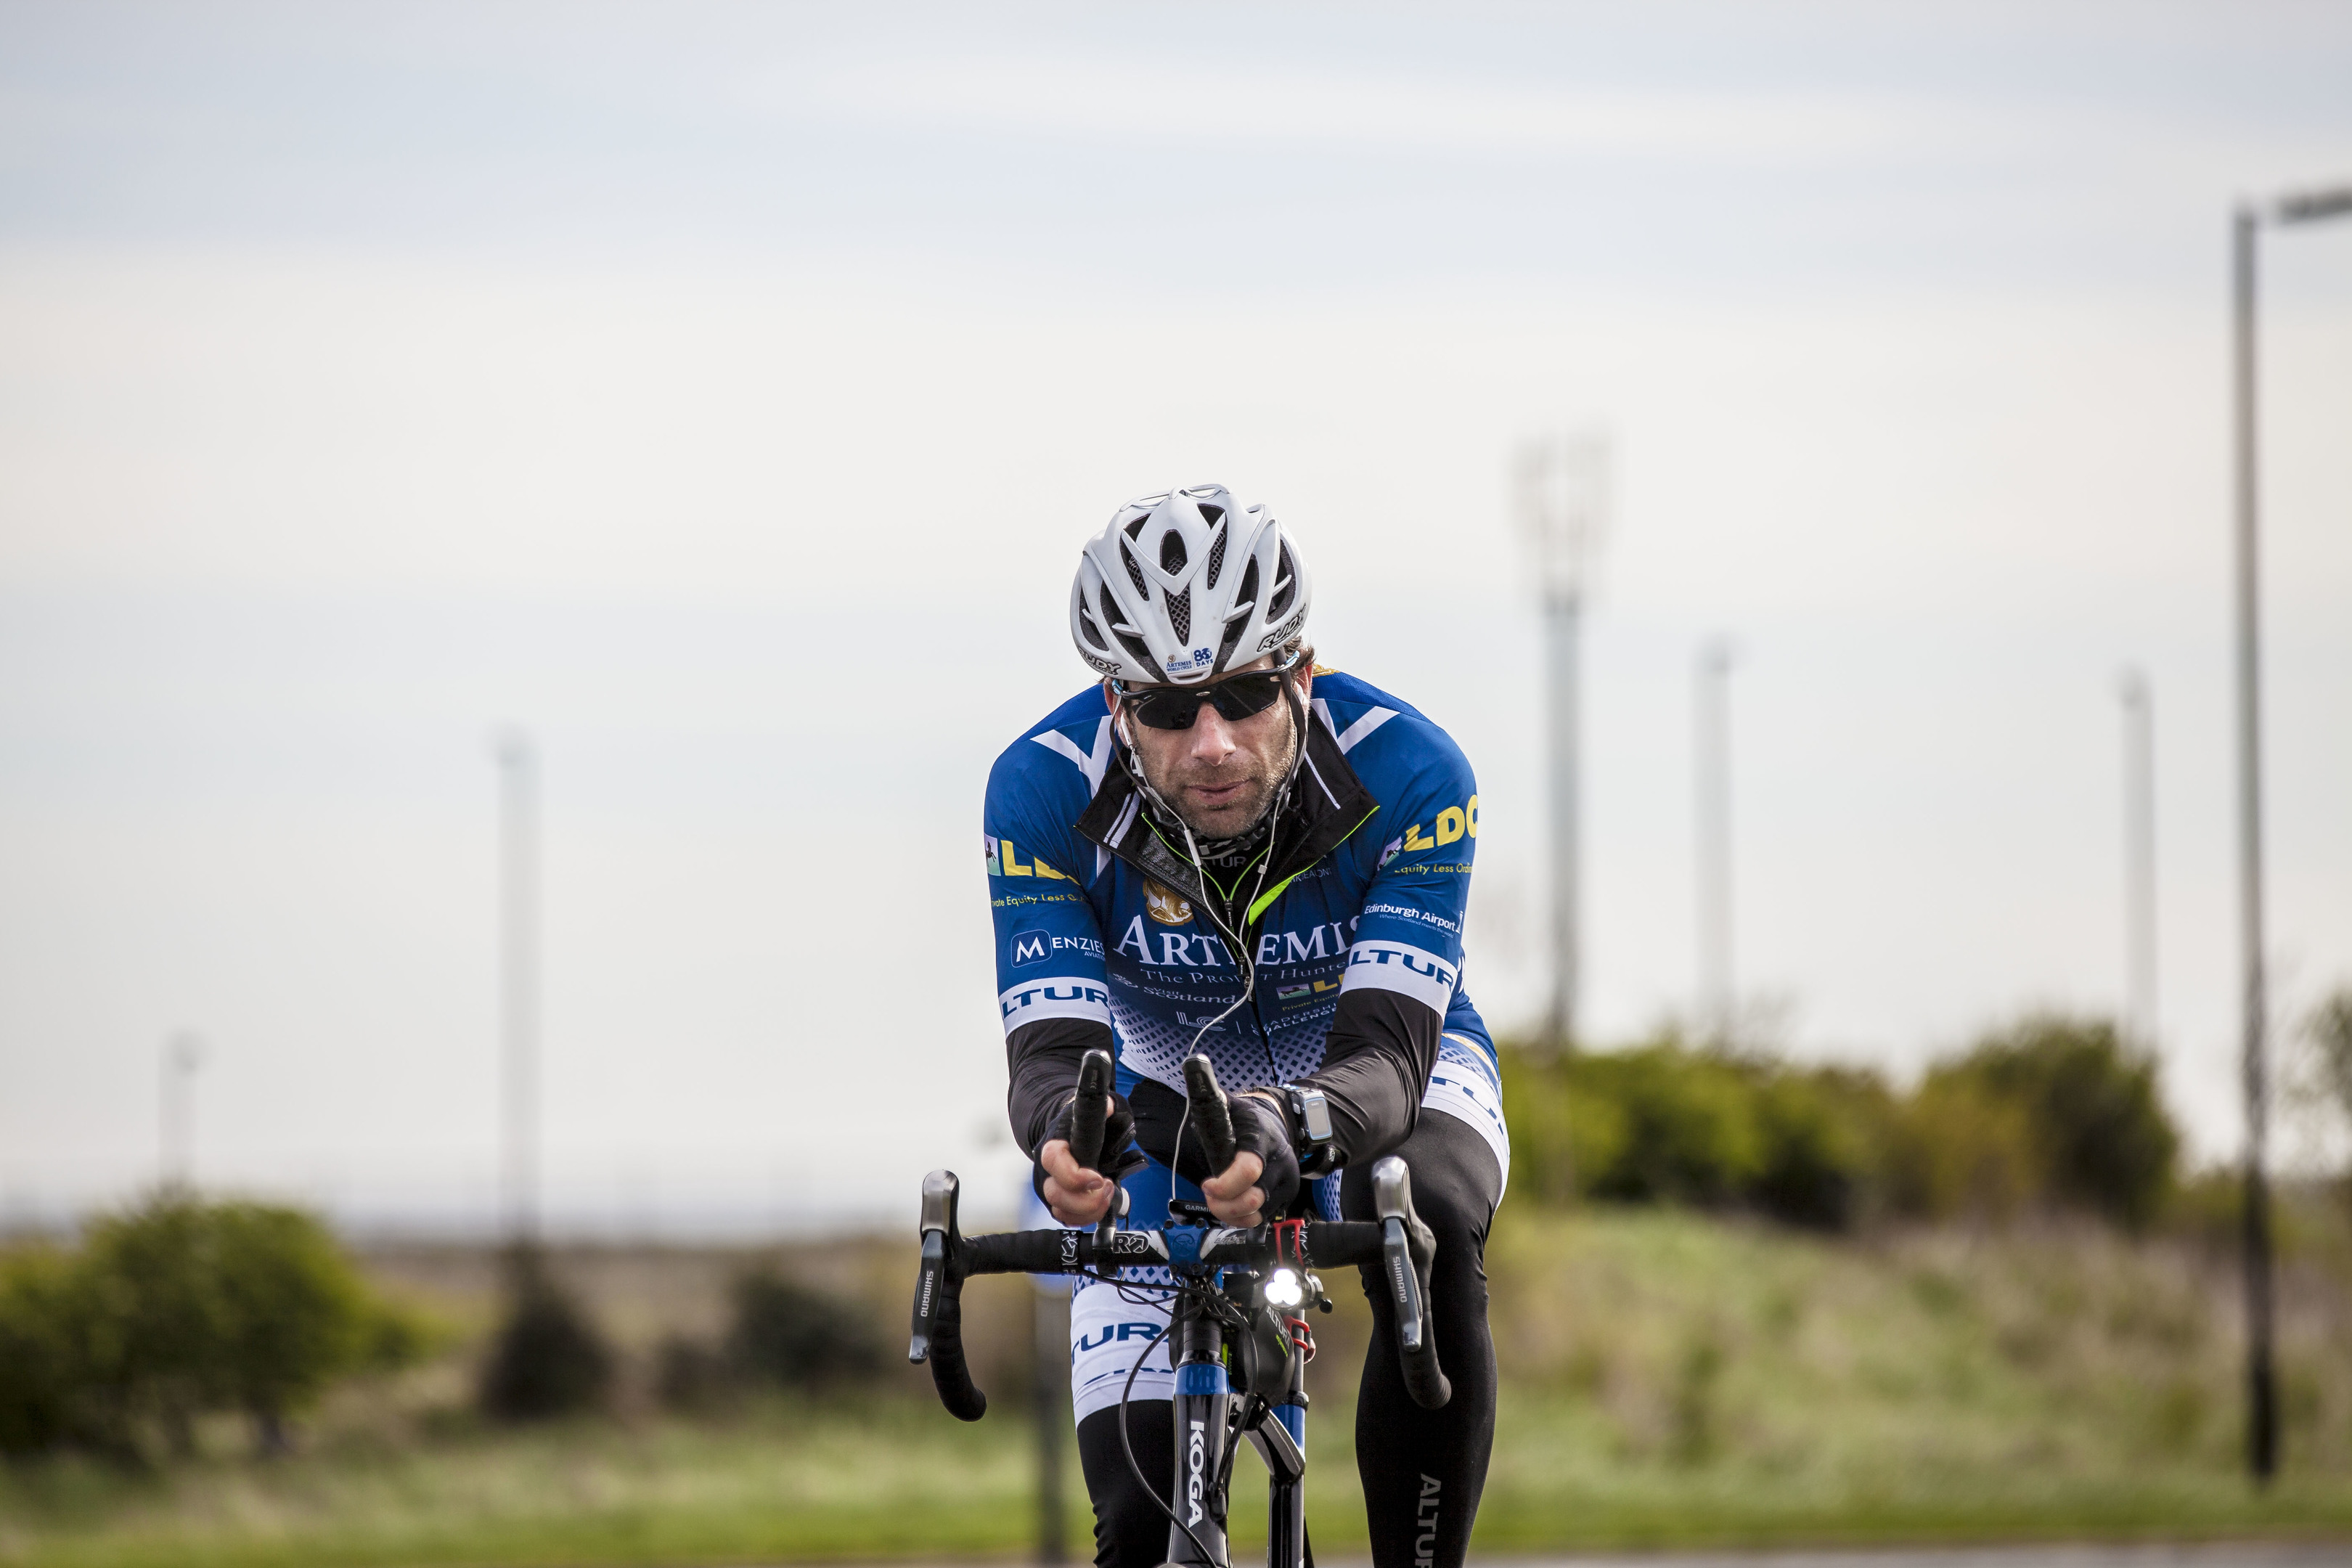 Mark Beaumont in action.